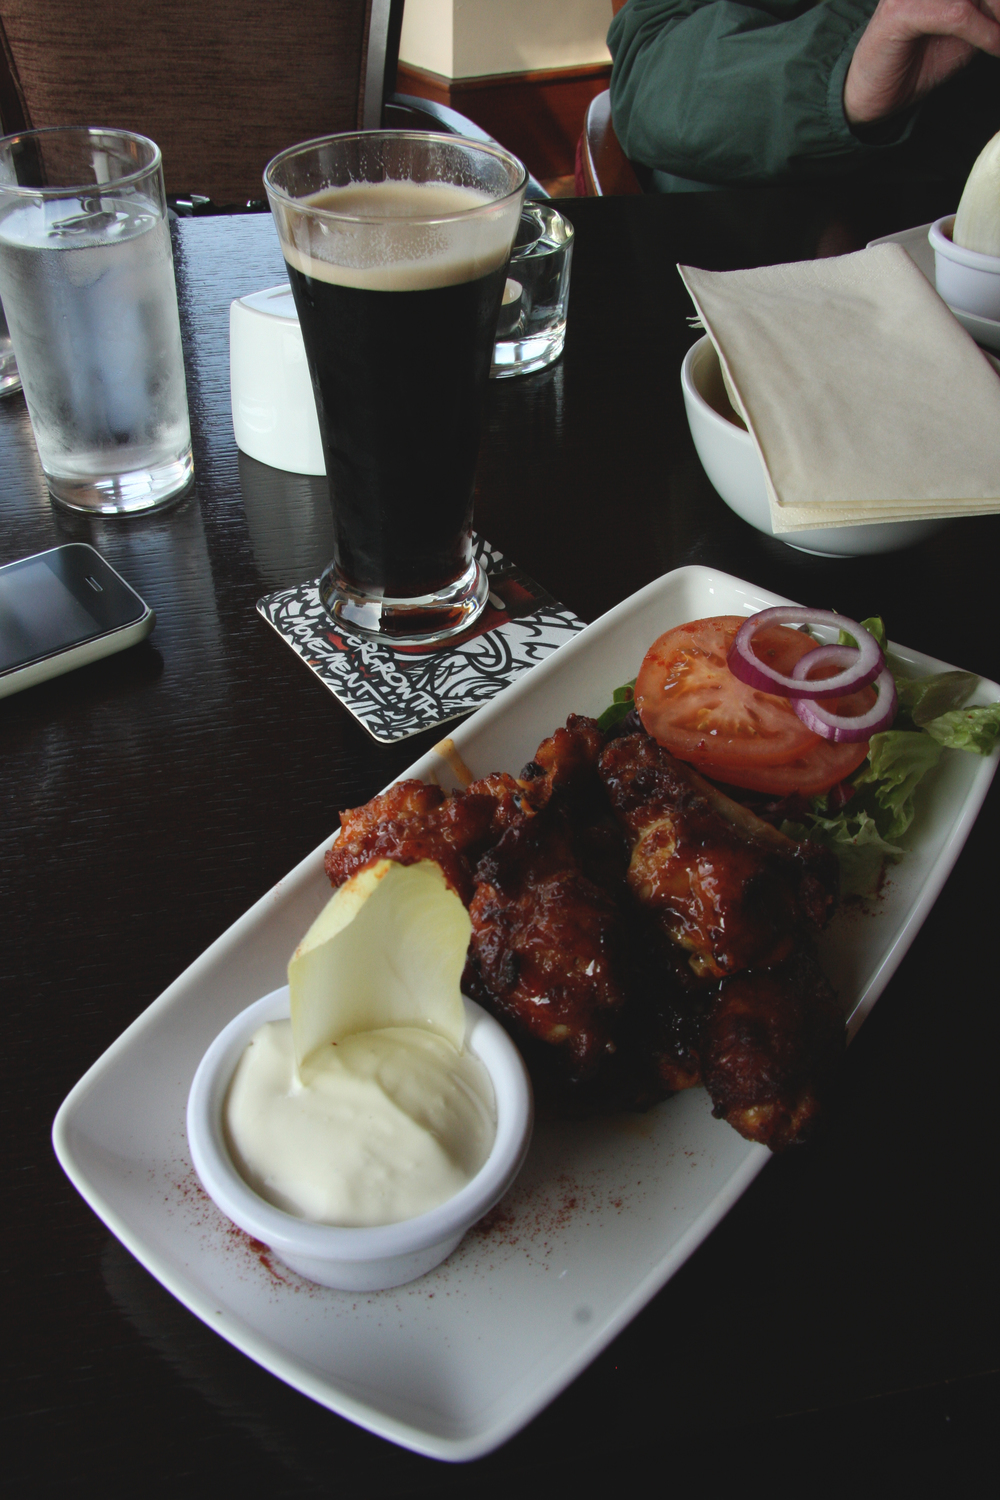 Along with that first-ever Guinness? The best wings I have ever had, to this very day.